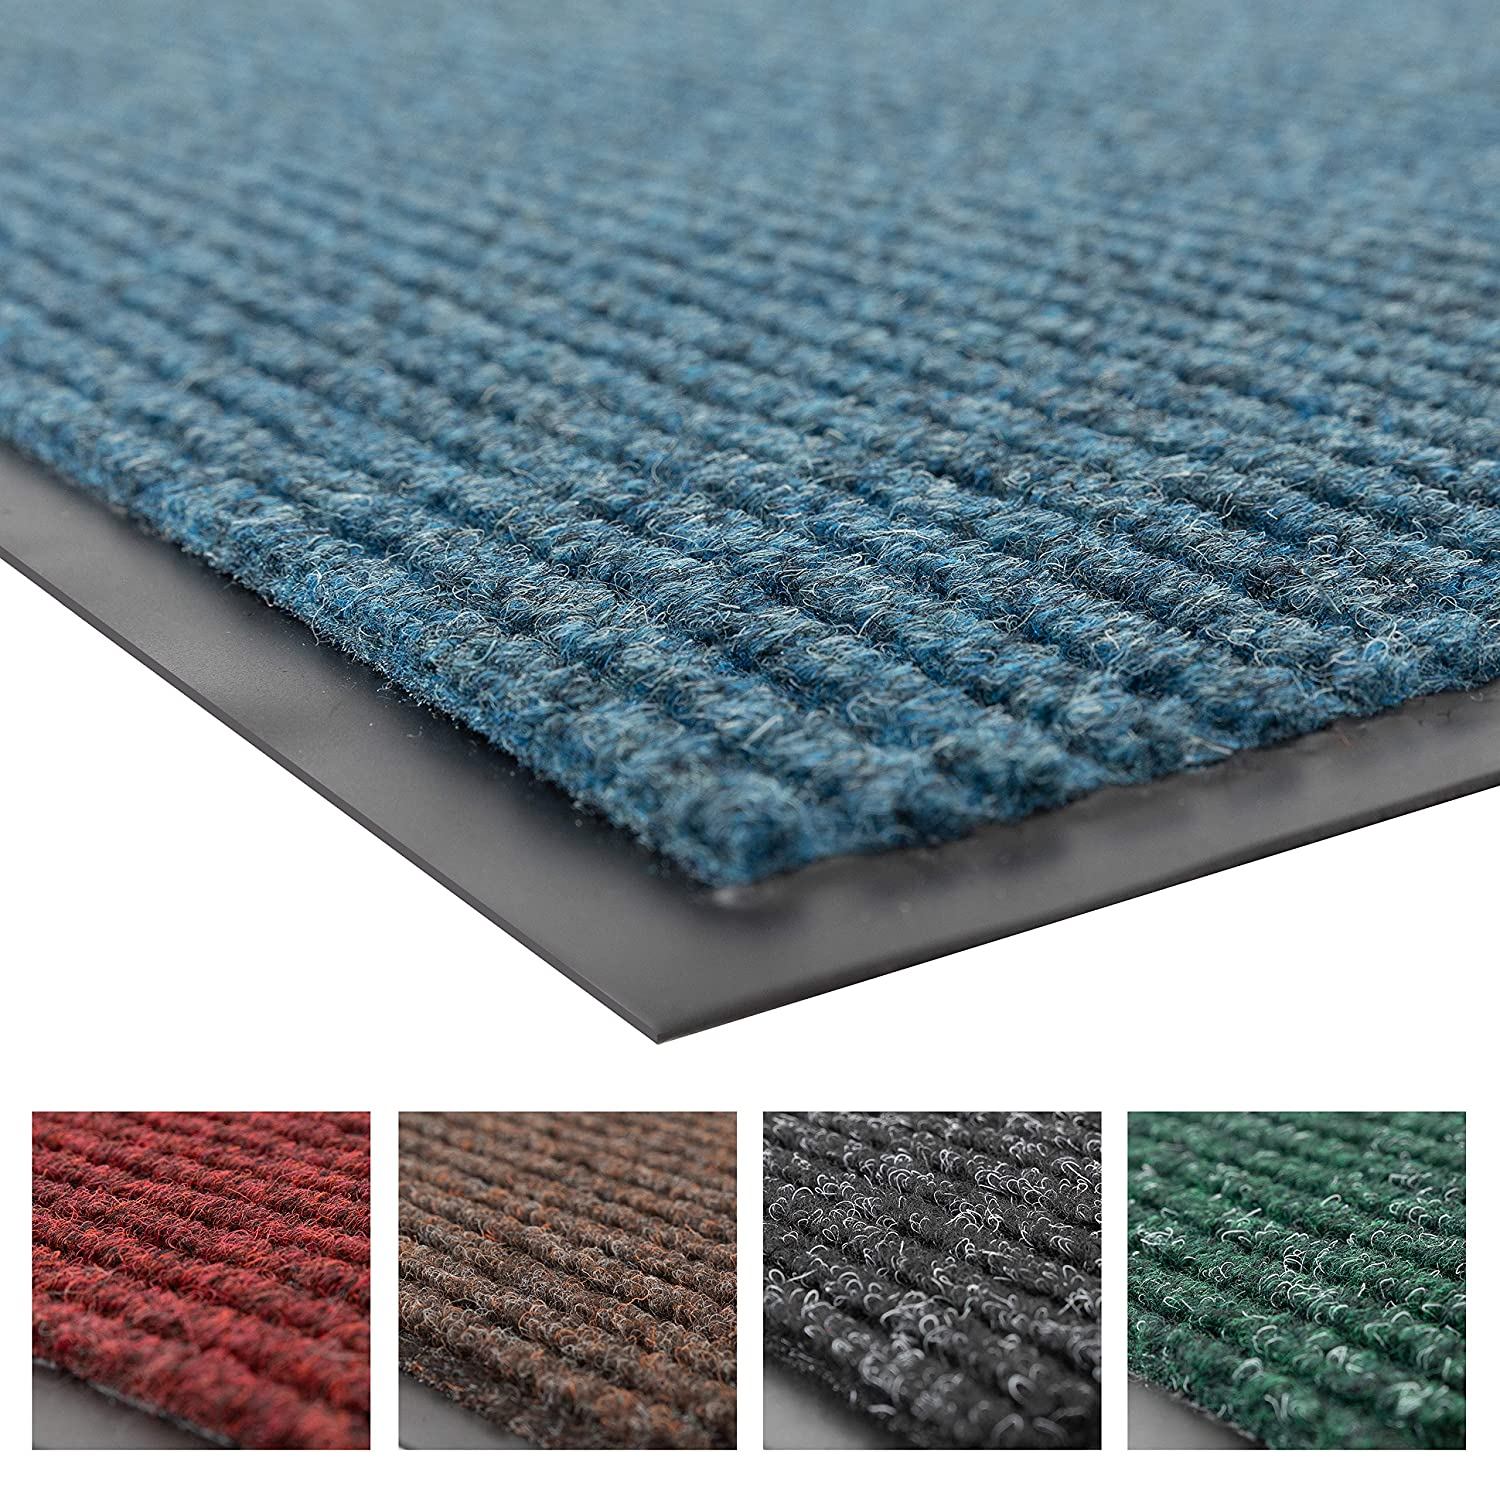 Notrax 109 Brush Step Entrance Mat, for Home or Office, 2' X 3' Slate Blue